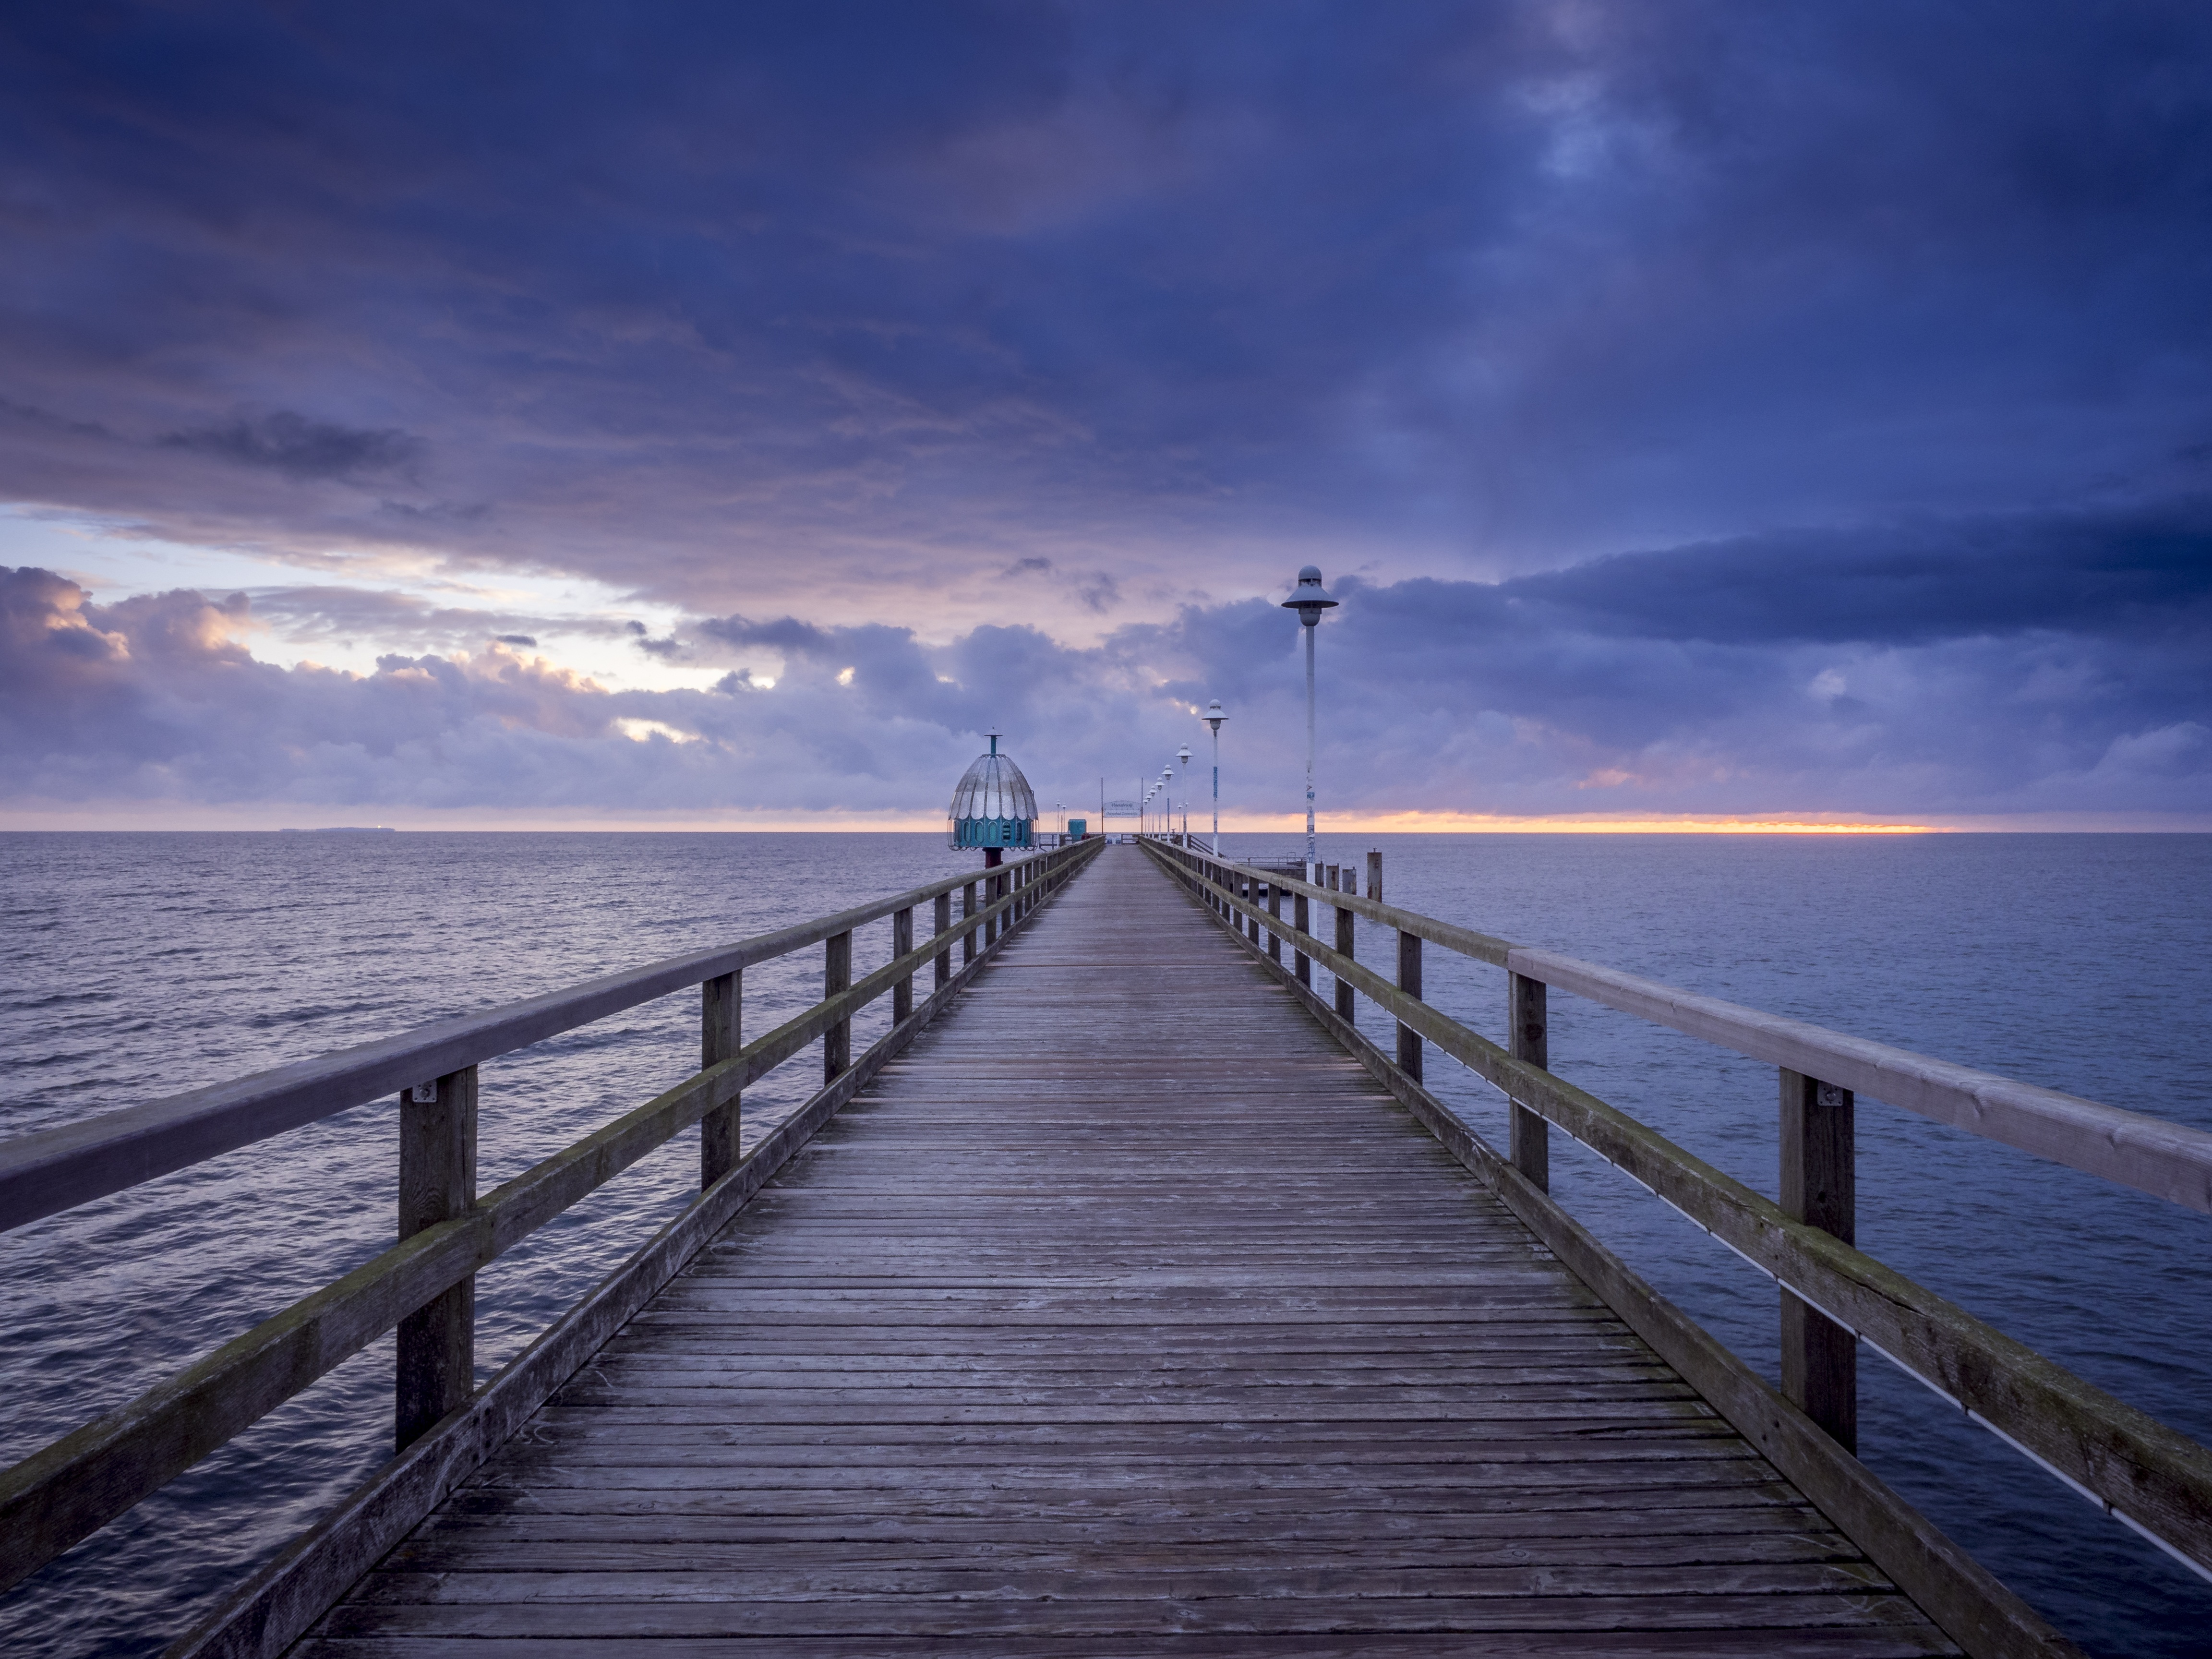 Baltic Sea, Pier